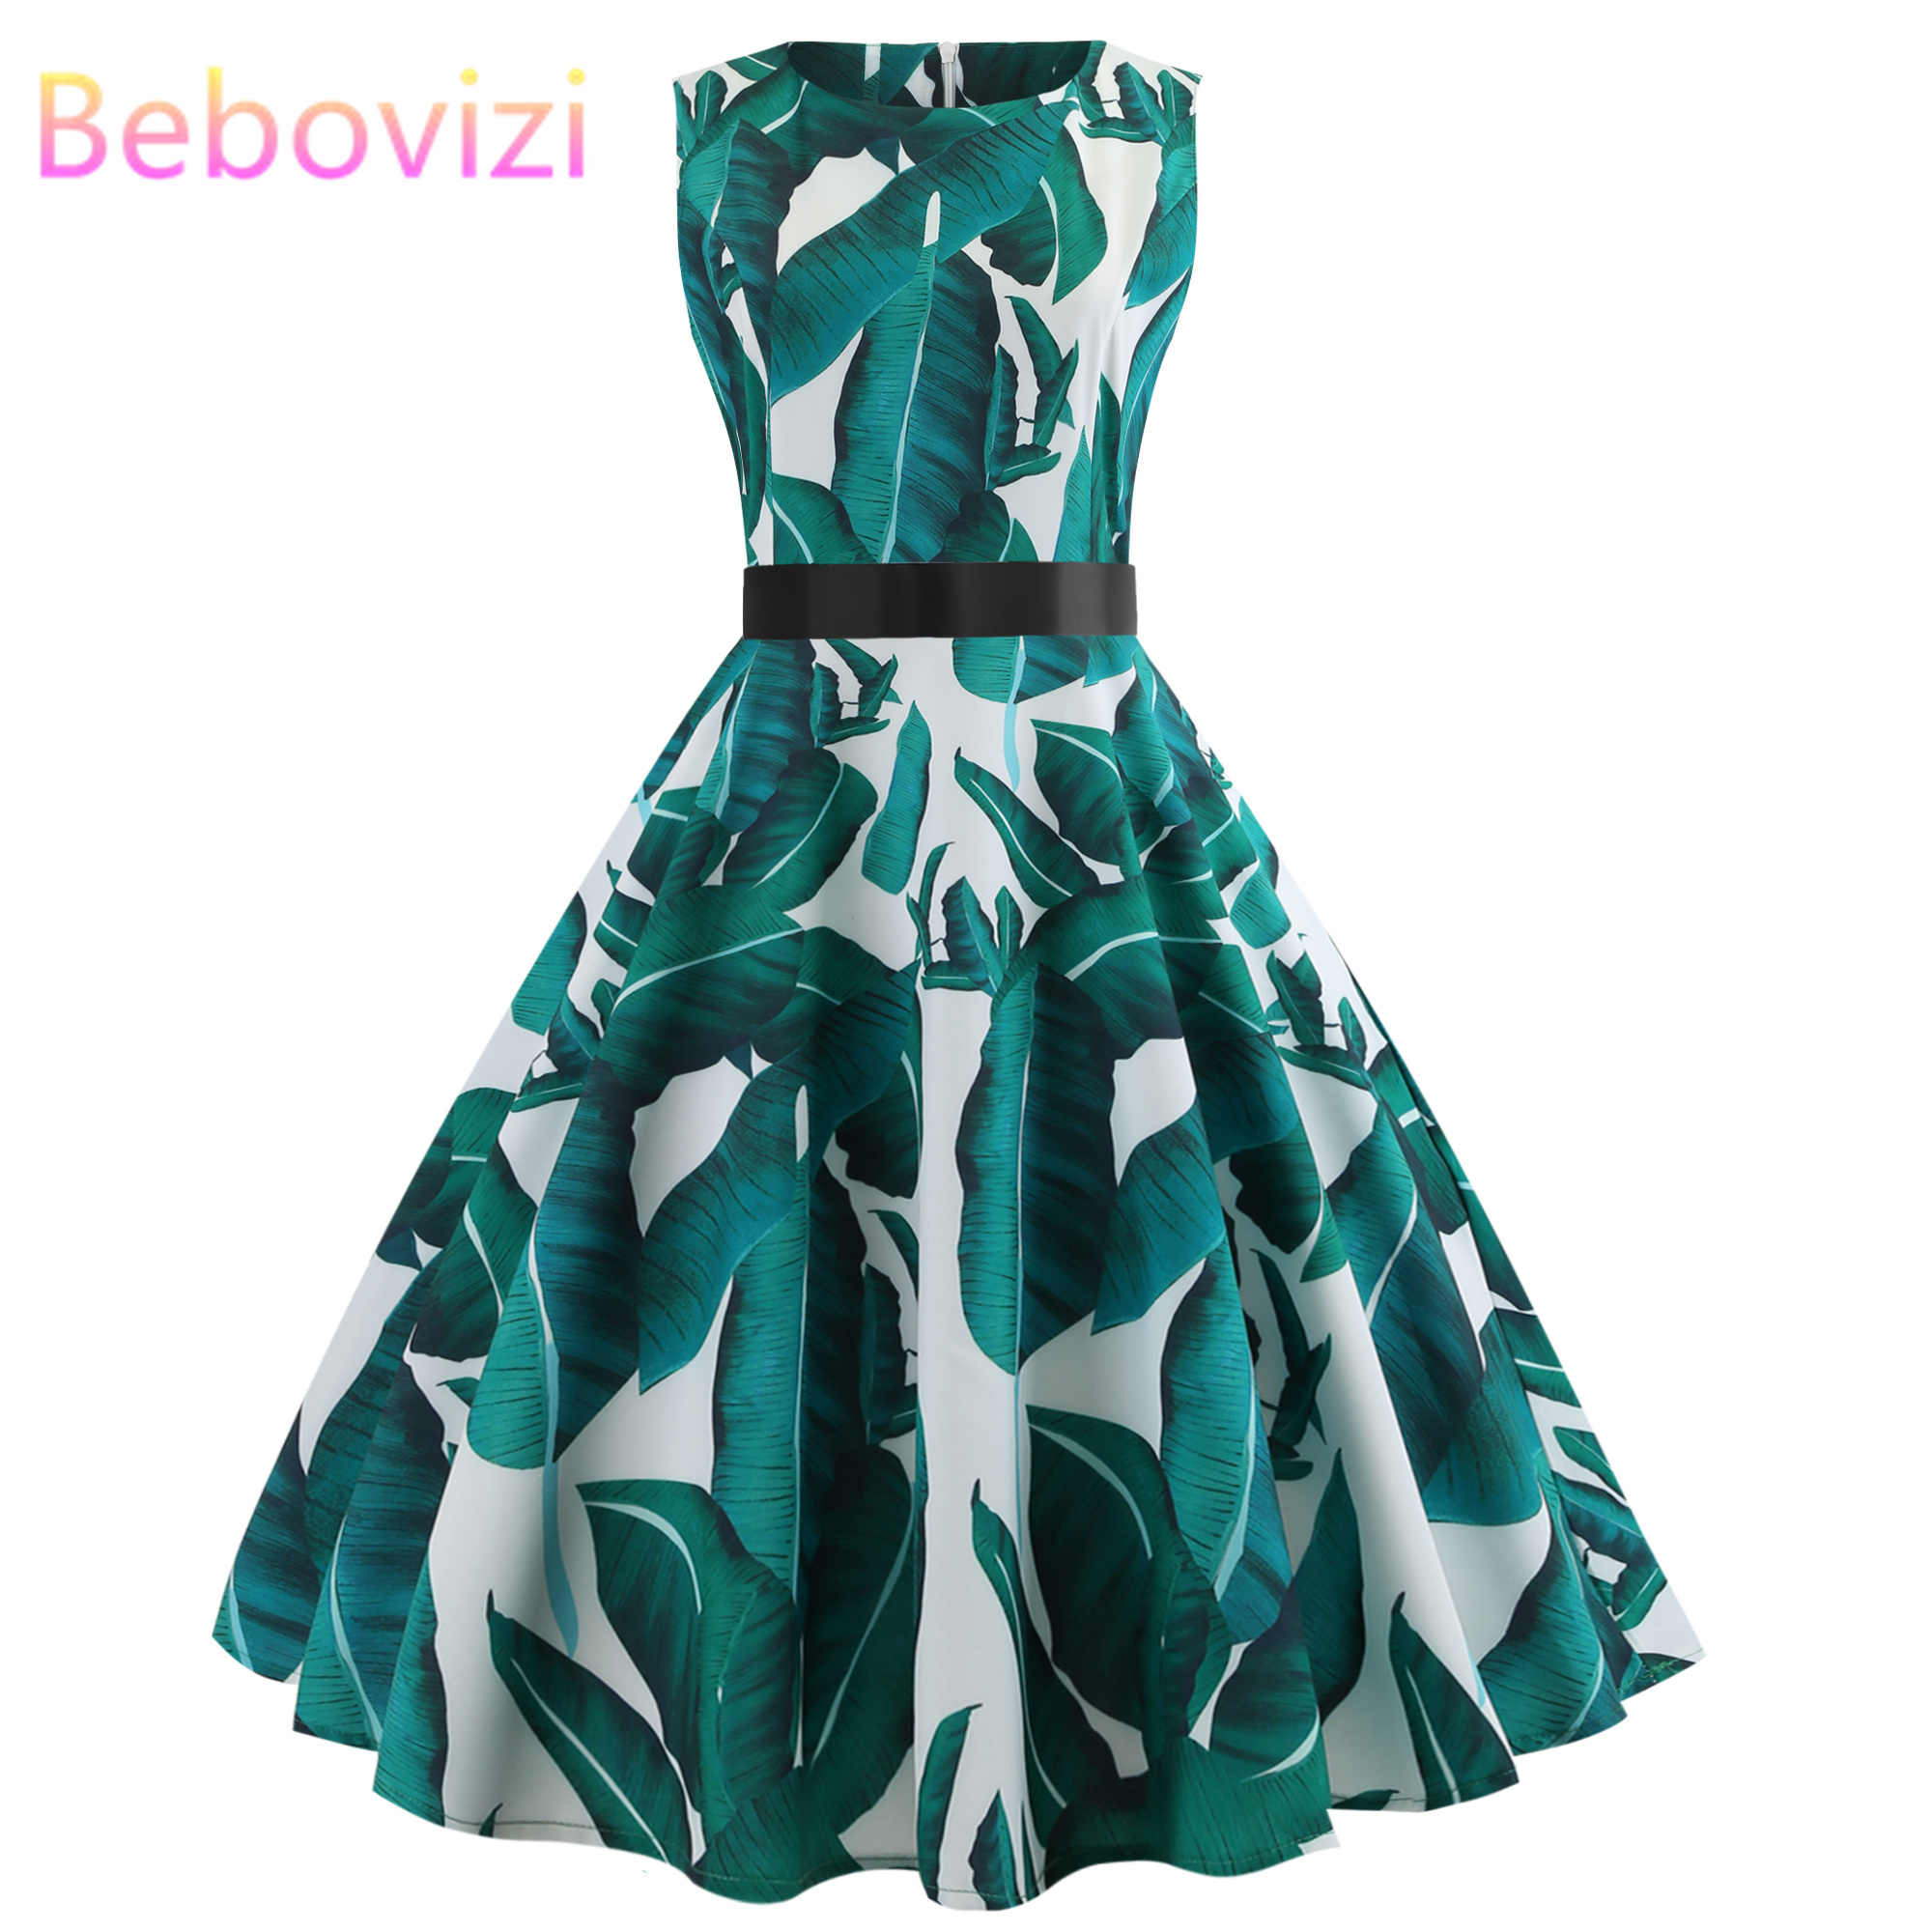 Bebovizi Fashion 2019 Summer Women Hepburn 50s Vintage Floral Print Sleeveless Retro Swing Casual Elegant Party Bandage Dress